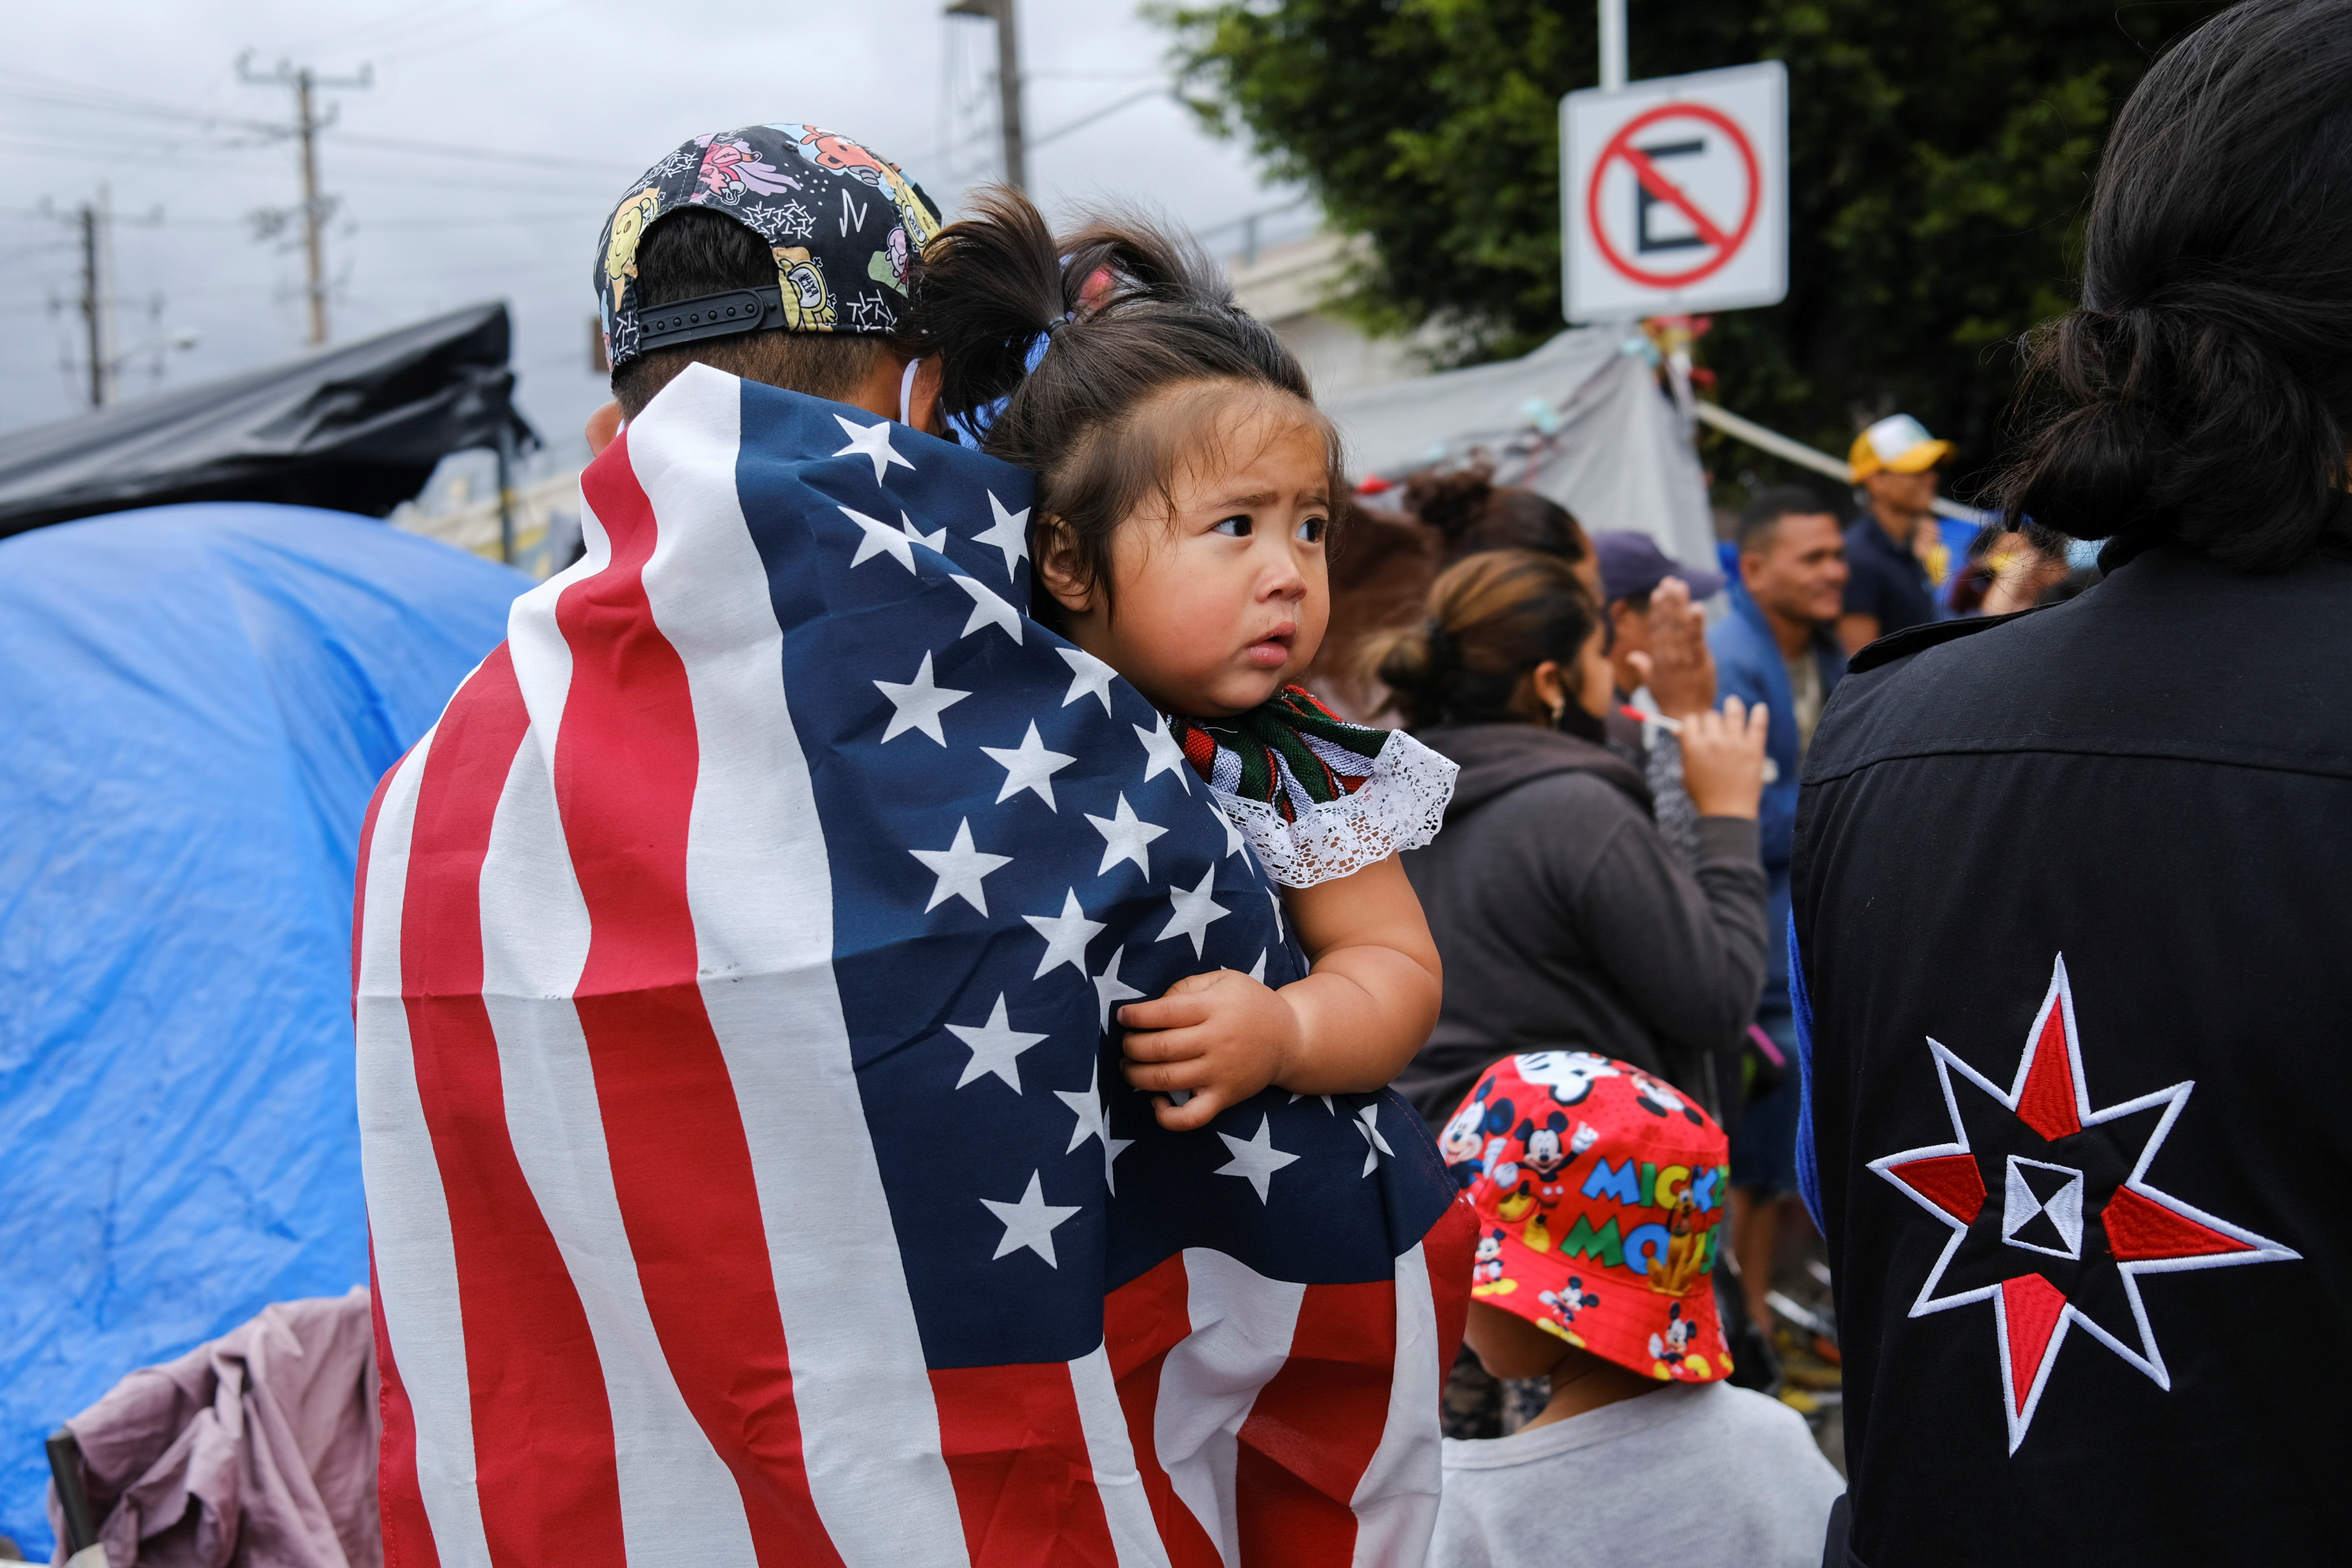 Honduran migrant Kevin, wearing a U.S. flag, holds his daughter Keiry, during a multicultural activity at a makeshift camp at the El Chaparral border port of entry with the U.S., in Tijuana, Mexico April 22, 2021.  REUTERS/Toya Sarno Jordan